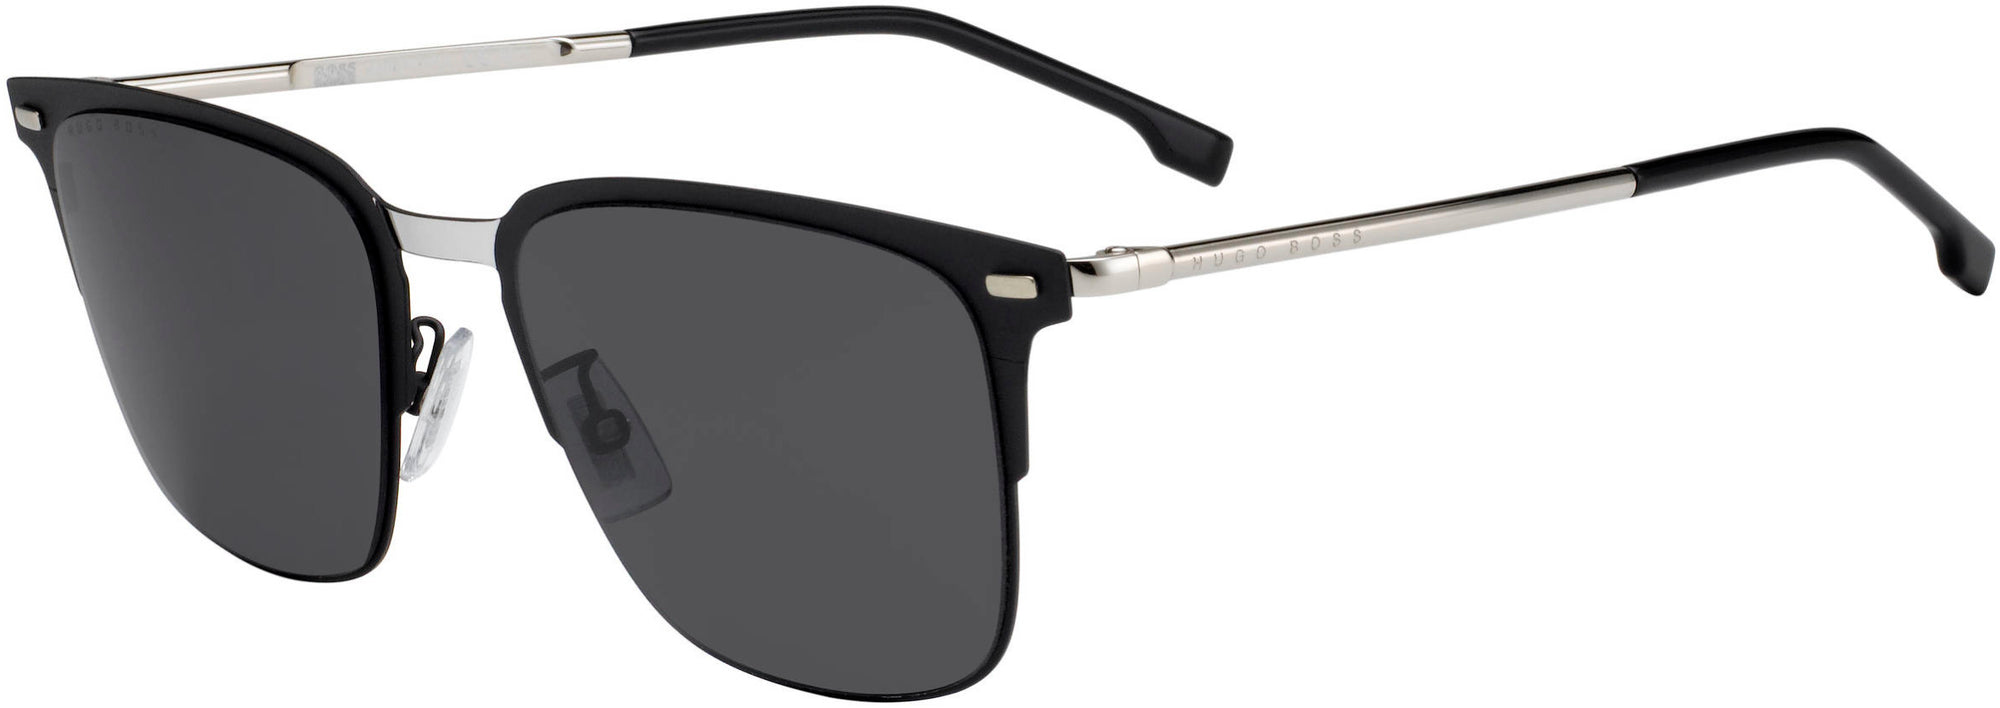 Boss (hub) BOSS 0951/F/S Square Sunglasses 0003-0003  Matte Black (IR Gray Blue)